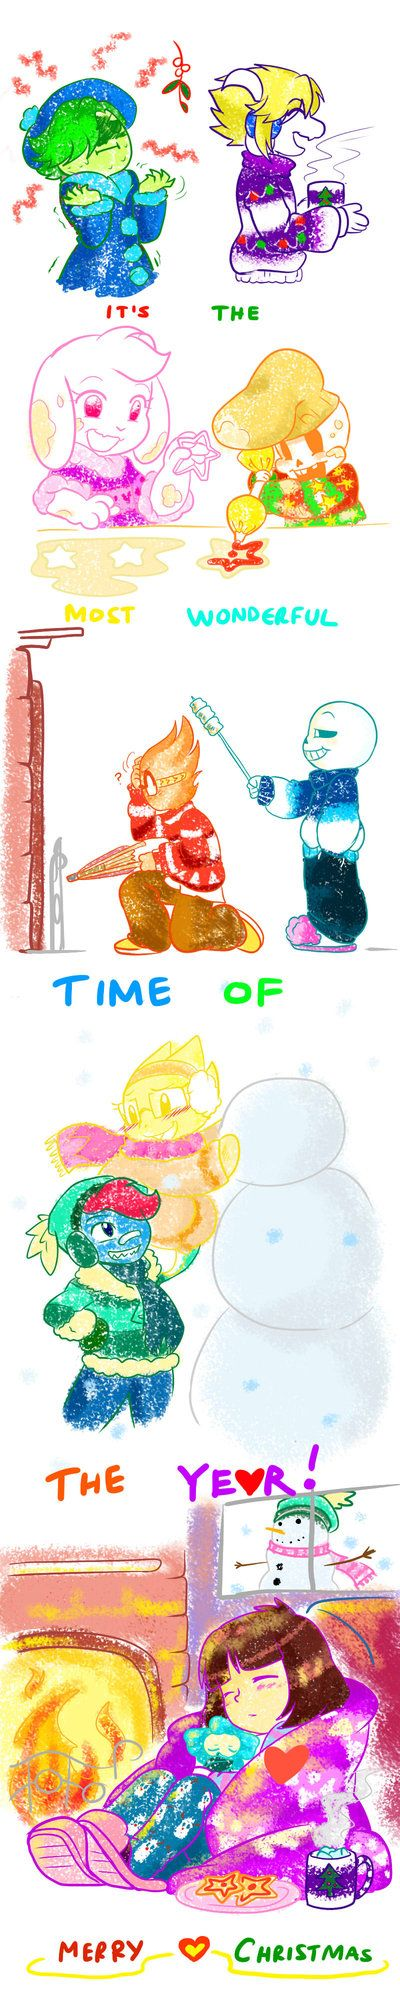 QT: IT'S THE MOST WONDERFUL 'TIME' OF THE YEAR! by perfectshadow06.deviantart.com on @DeviantArt